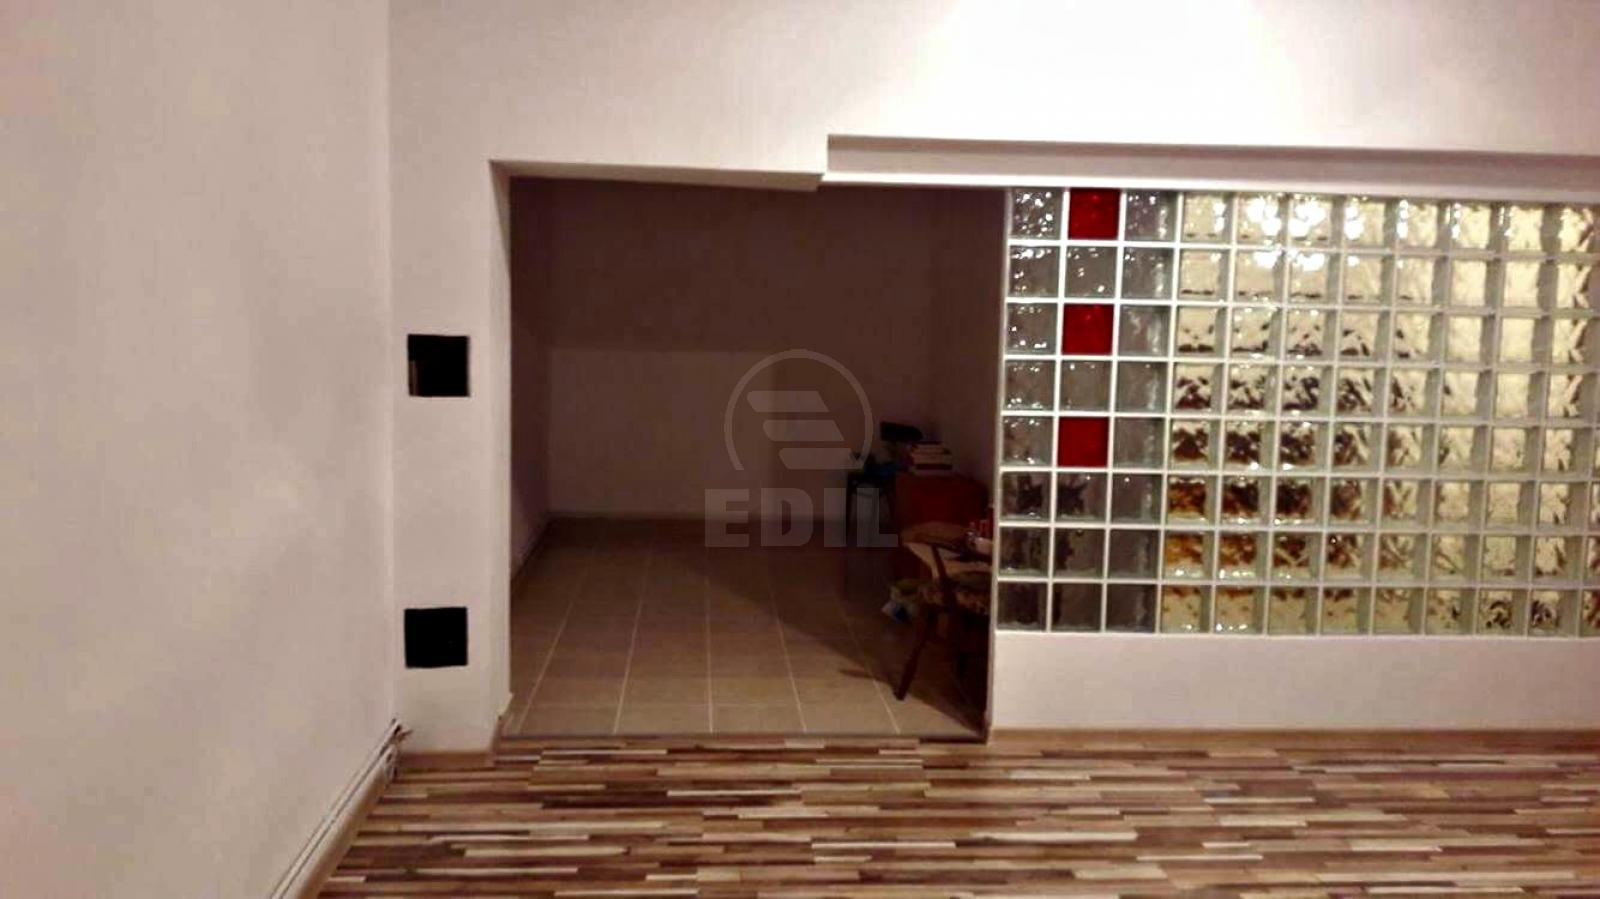 Apartment for sale 2 rooms, APCJ272606-3